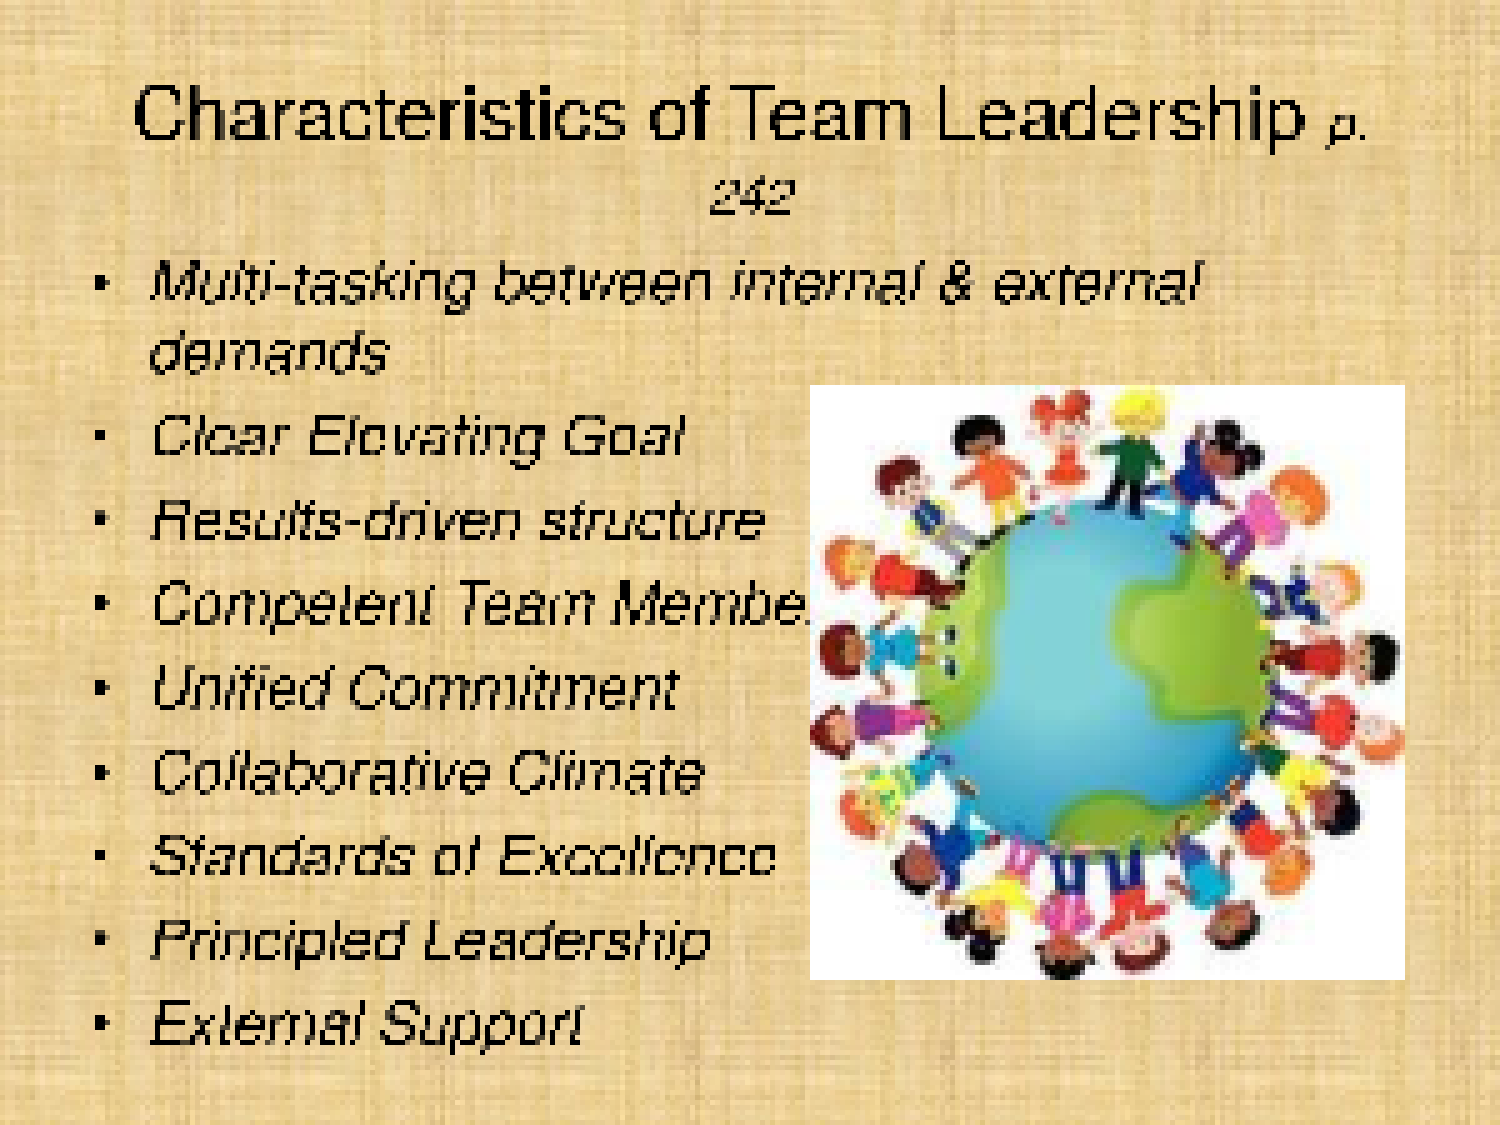 group leadership and conflict summaryab Home soc 110 week 3 individual assignment group leadership and conflict summary soc 110 week 3 individual assignment group leadership and conflict summary $1400  can you identify constructive or deconstructive conflict occurring in this group what are some key indicators what conflict styles do you see.